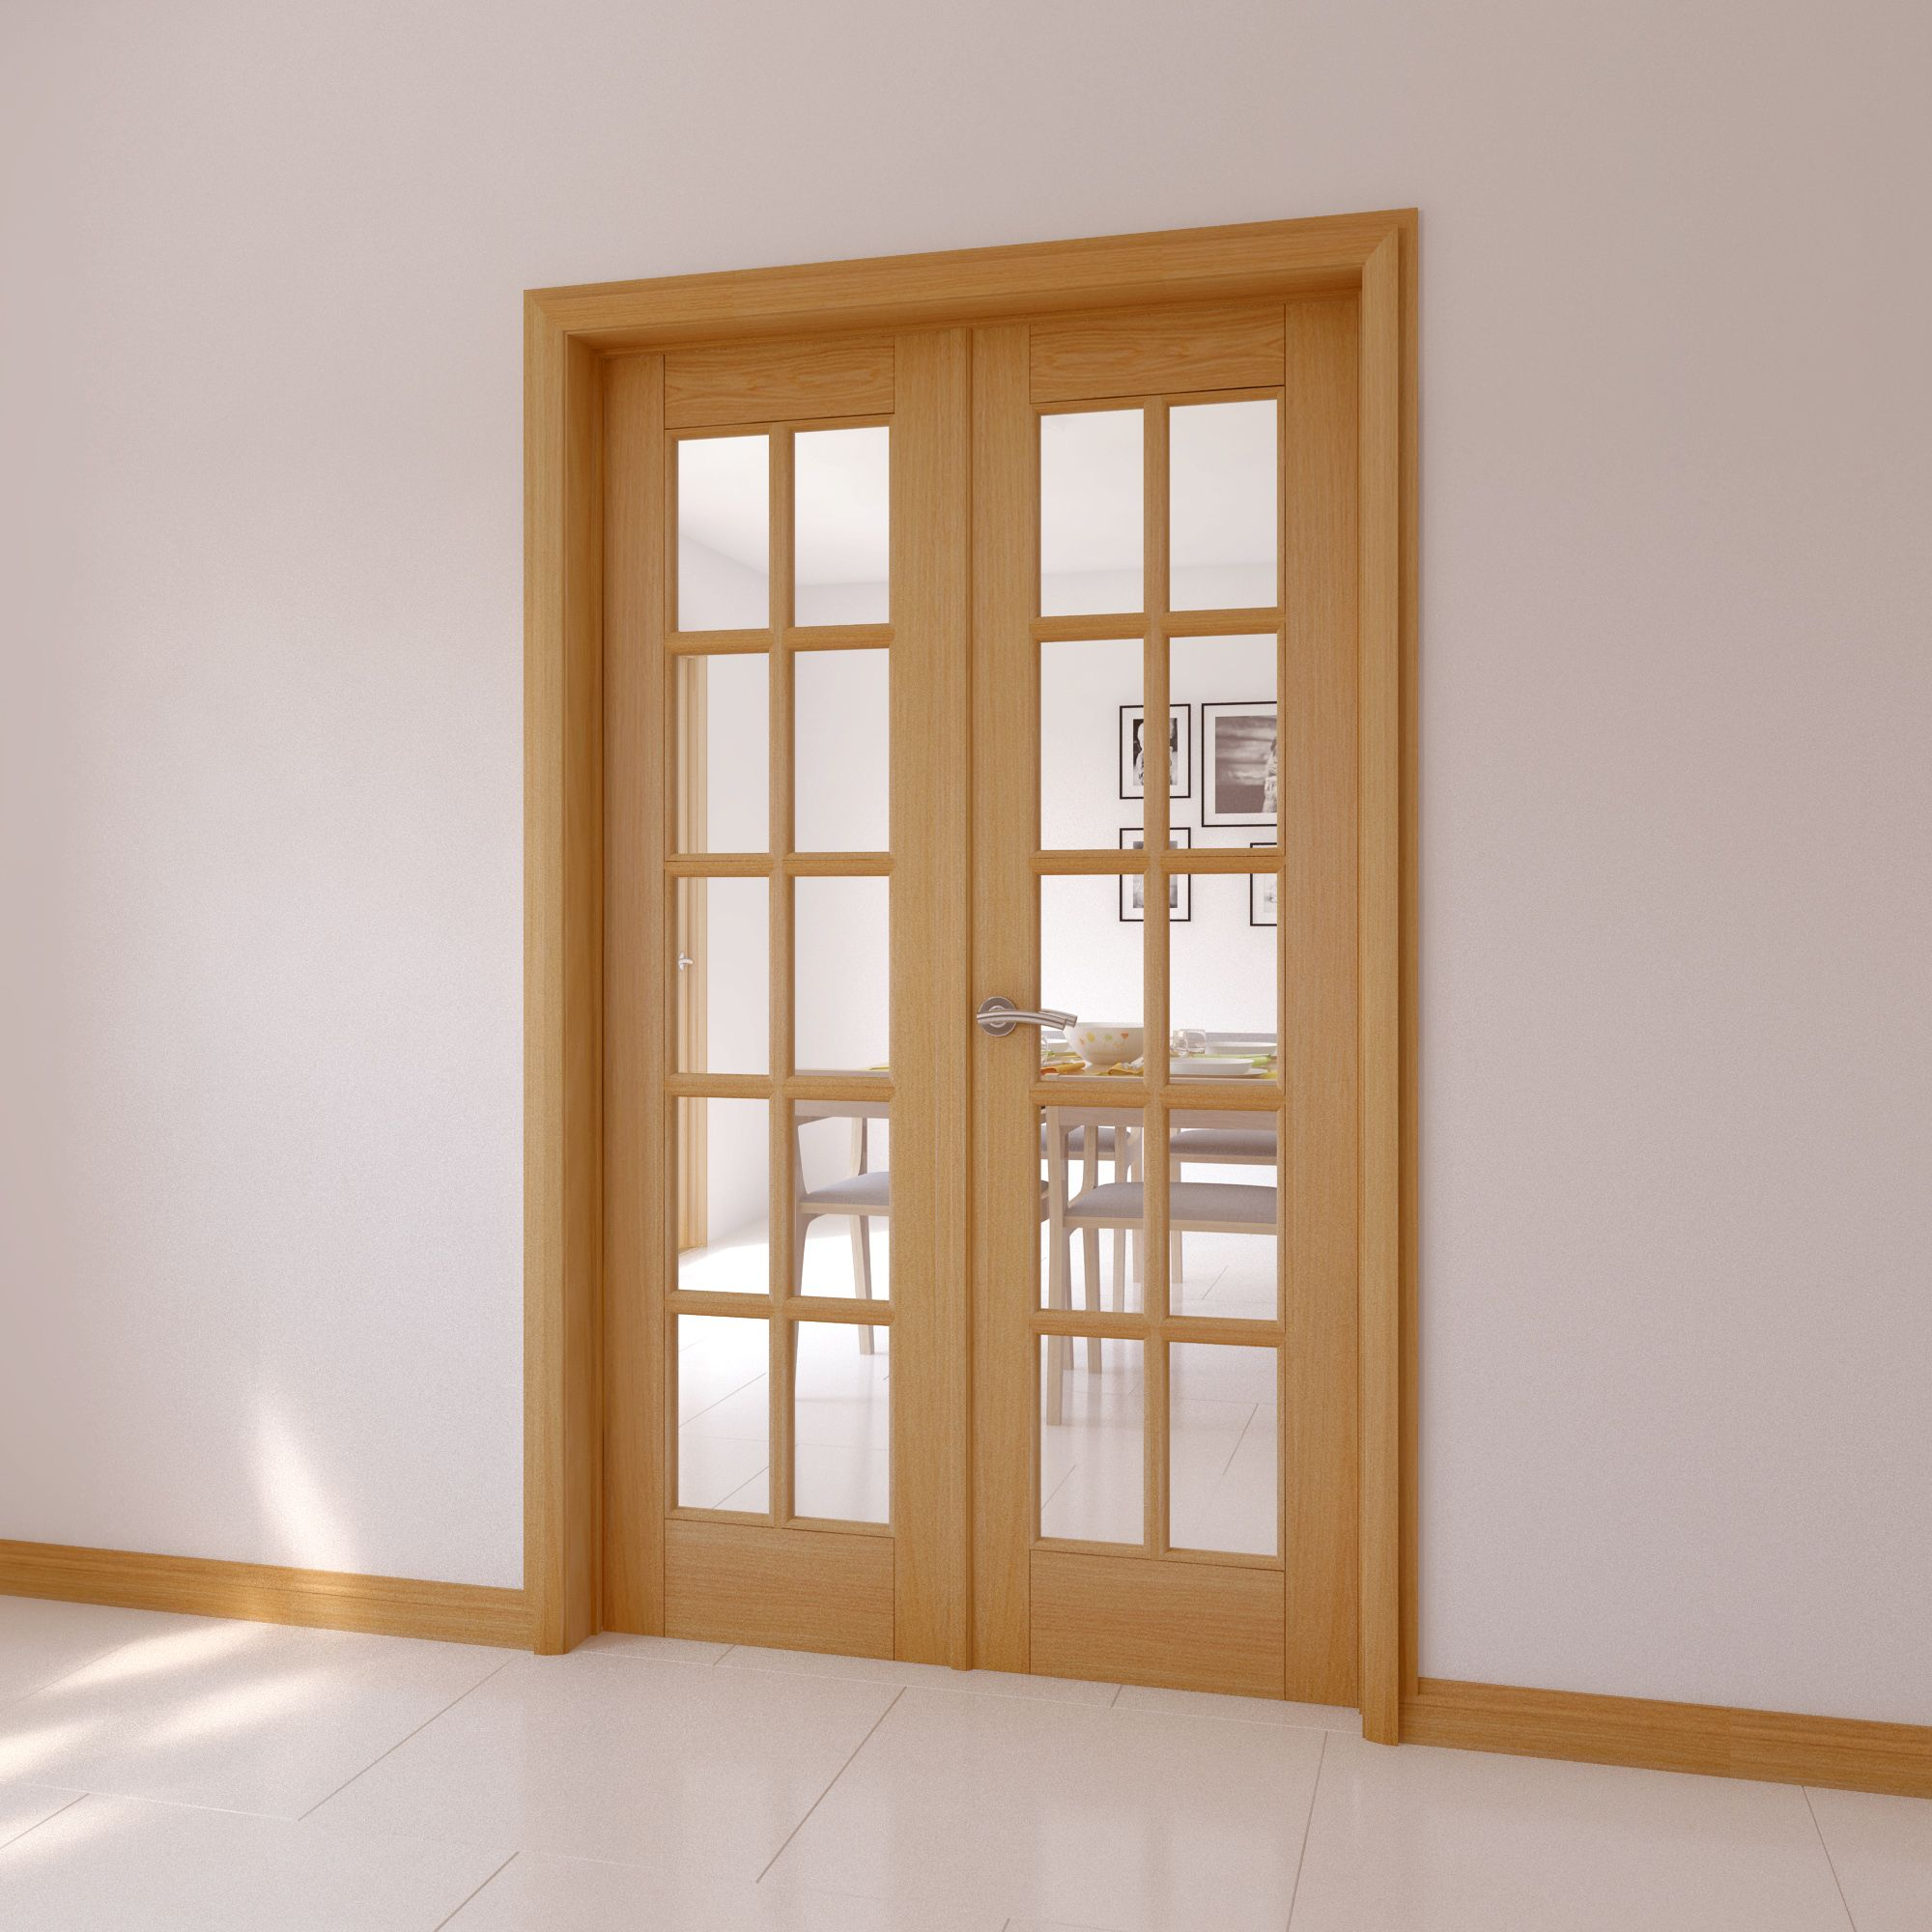 Images of sliding patio doors oak woonv handle idea oak french doors examples ideas pictures megarct com just rubansaba